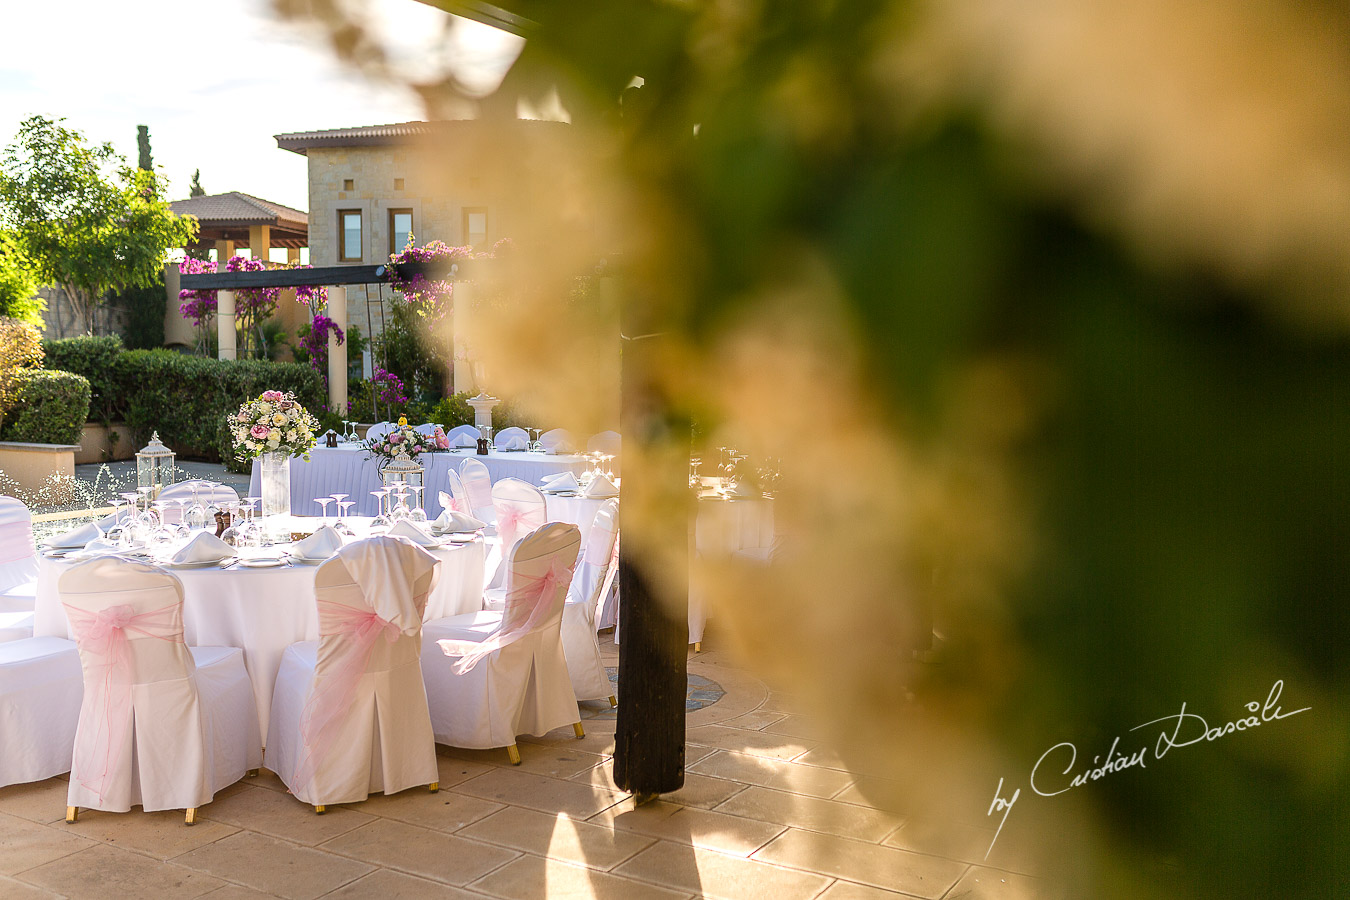 The secret garden decorations decorations captured by Cristian Dascalu at a wedding at The Aphrodite Hills Resort in Paphos, Cyprus.